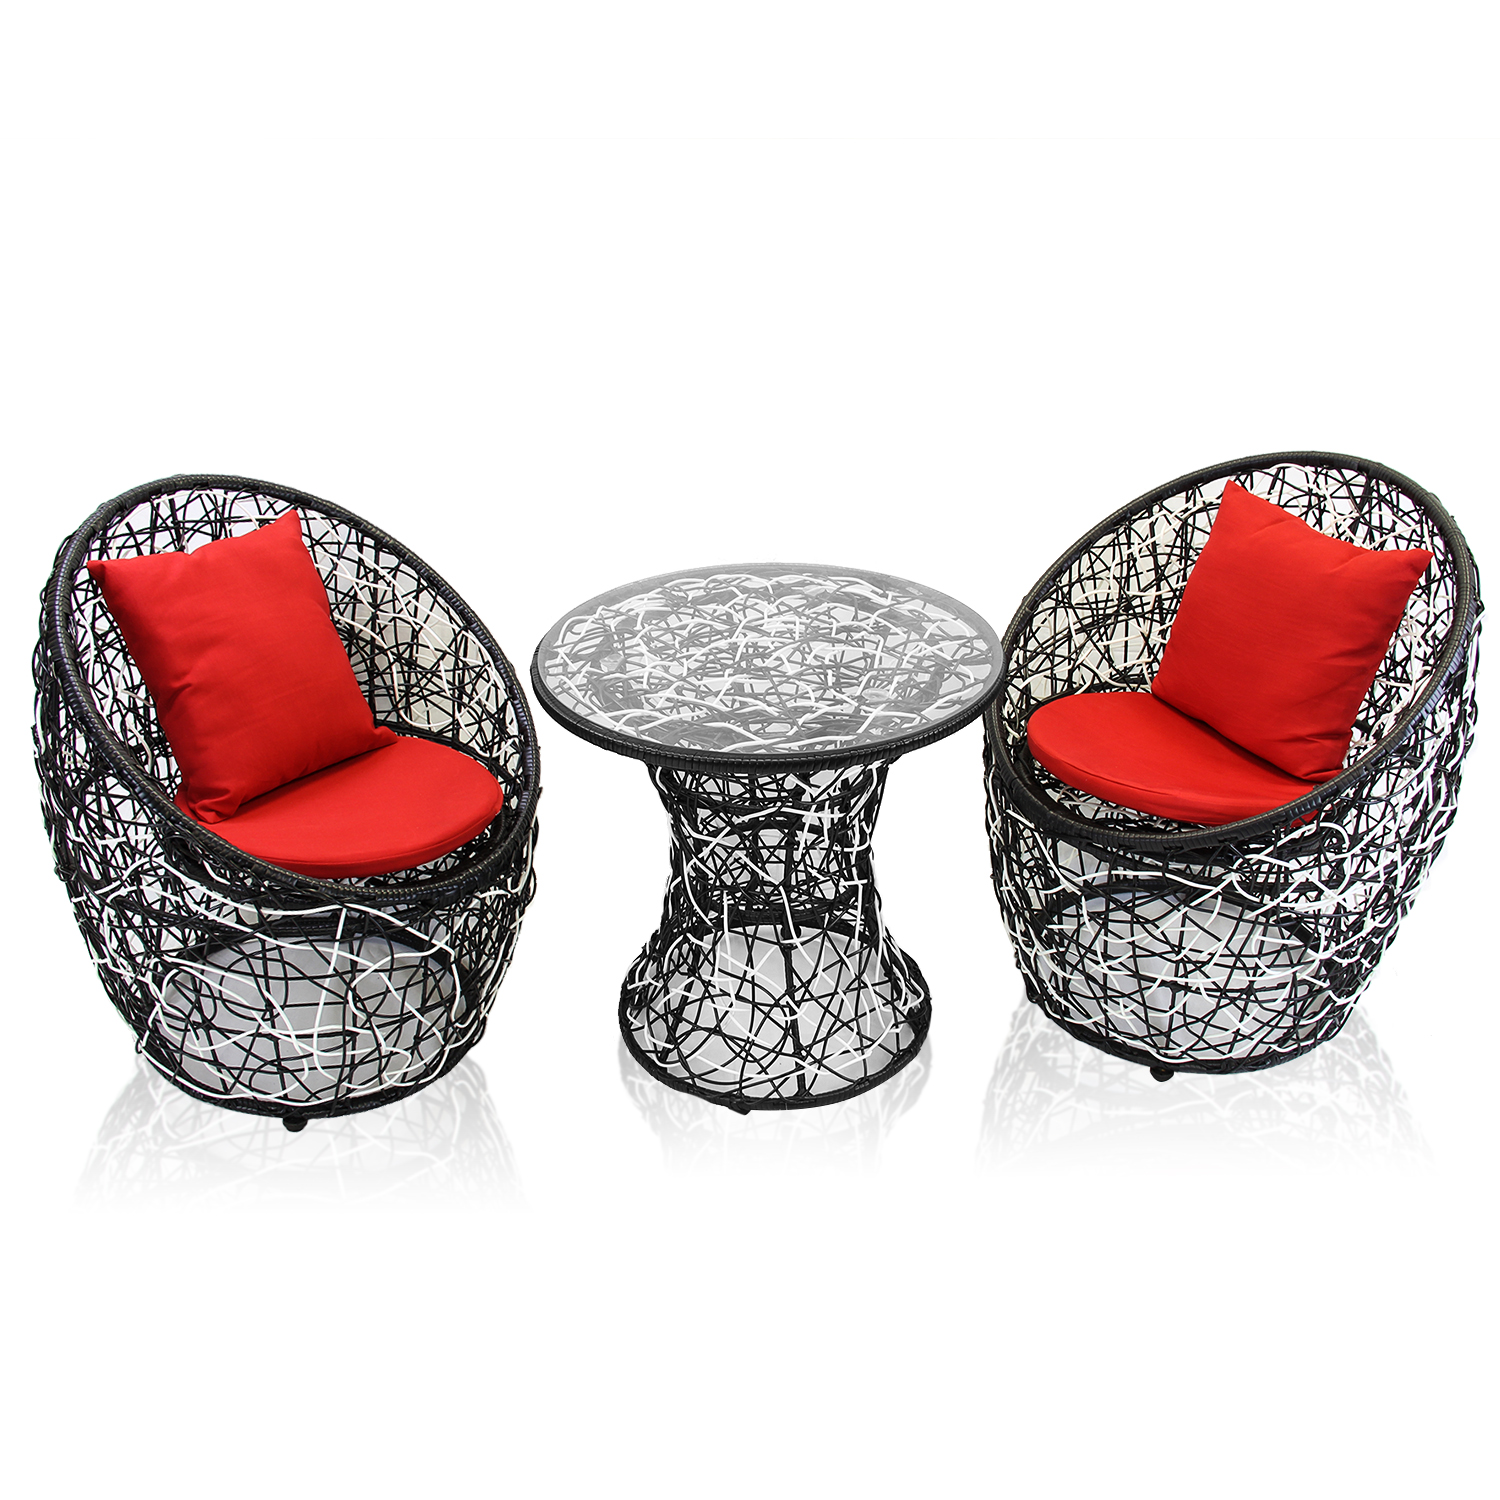 2 chairs and table rattan recliner chair with laptop dl furniture 1 combination round circle lounge plastic